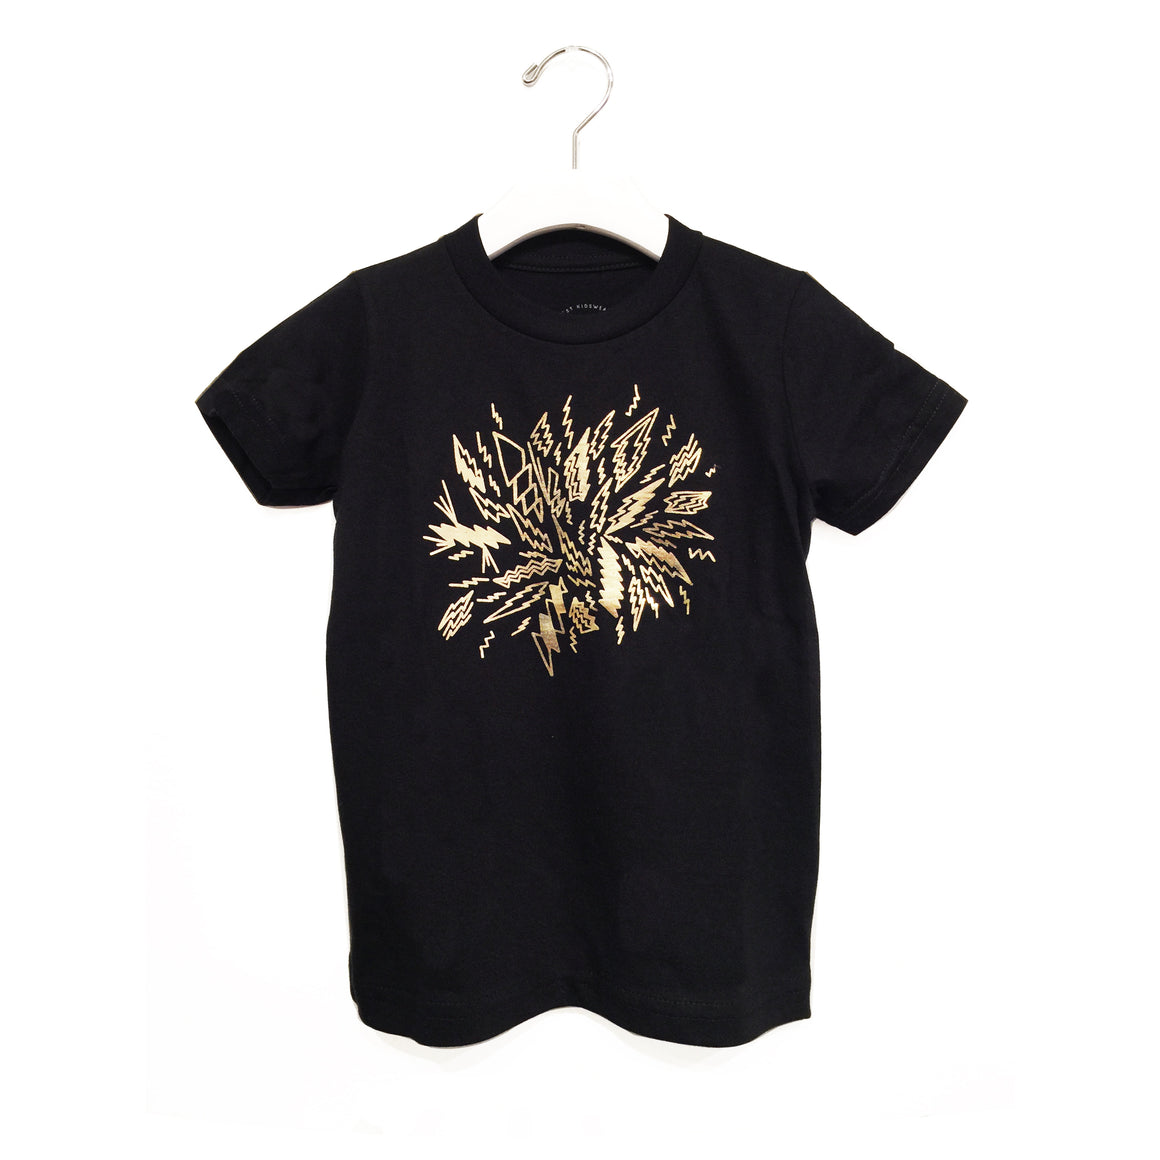 Kira x Coco, KID: Golden Bolts Graphic T-shirt, Black